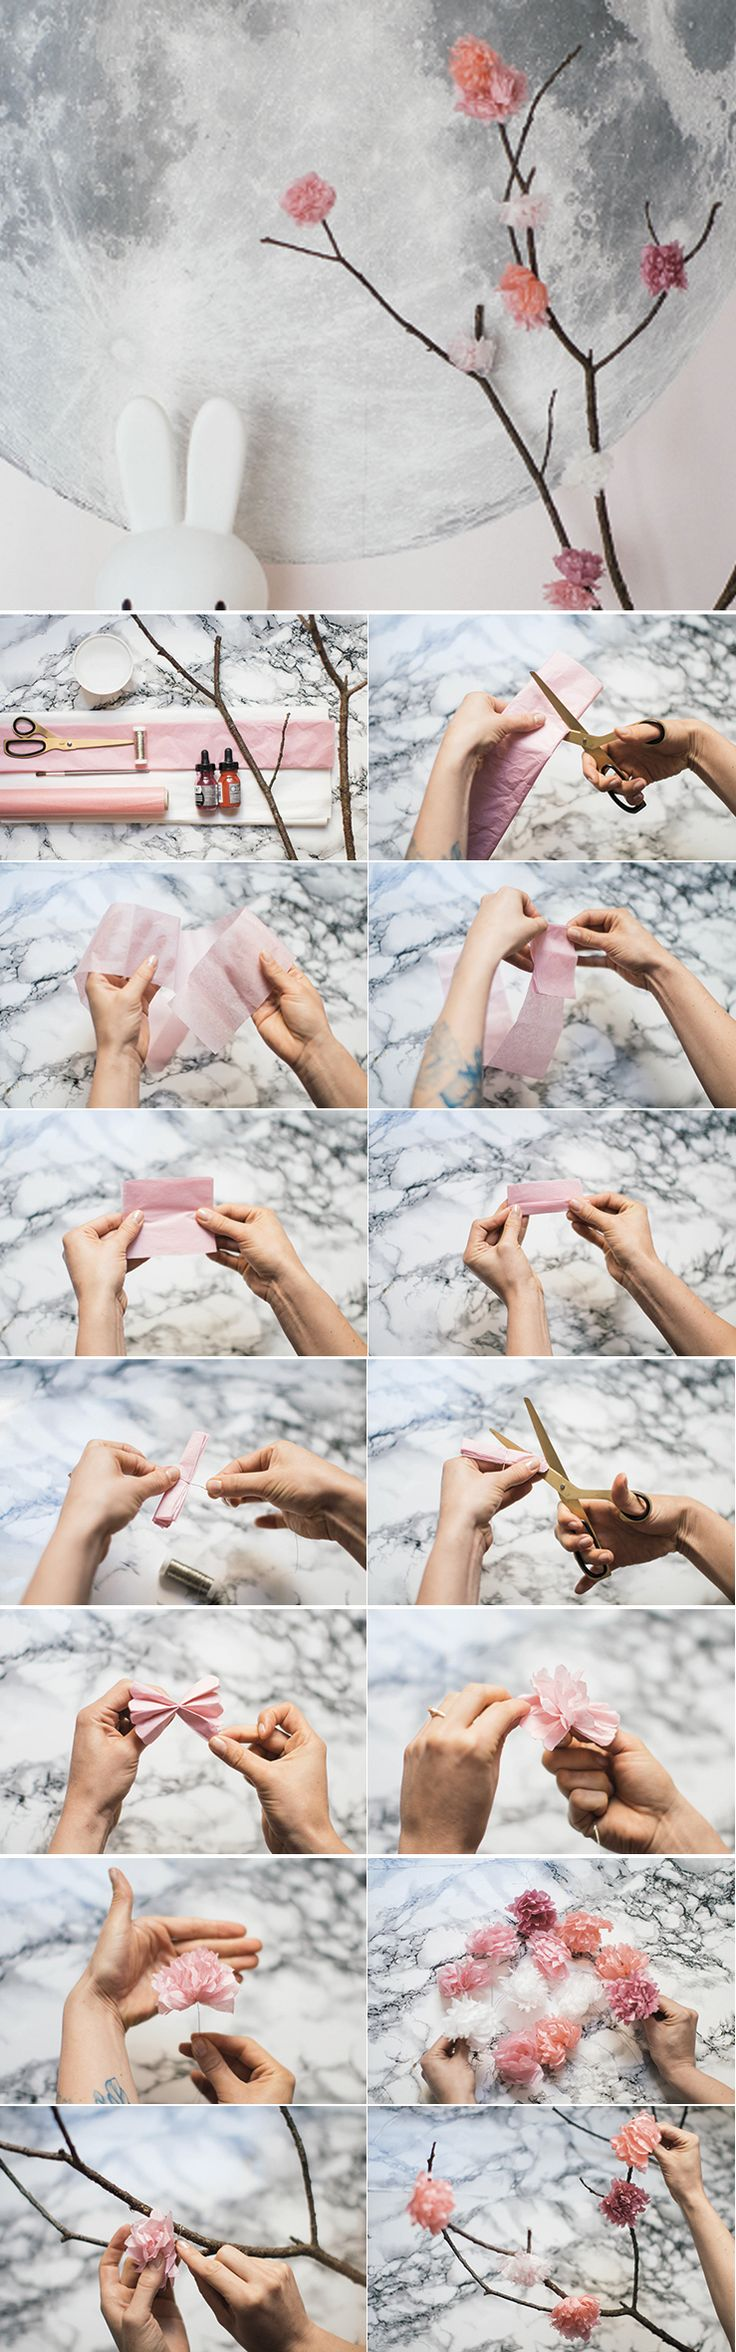 http://makemylemonade.com/diy-eternel-cerisier/